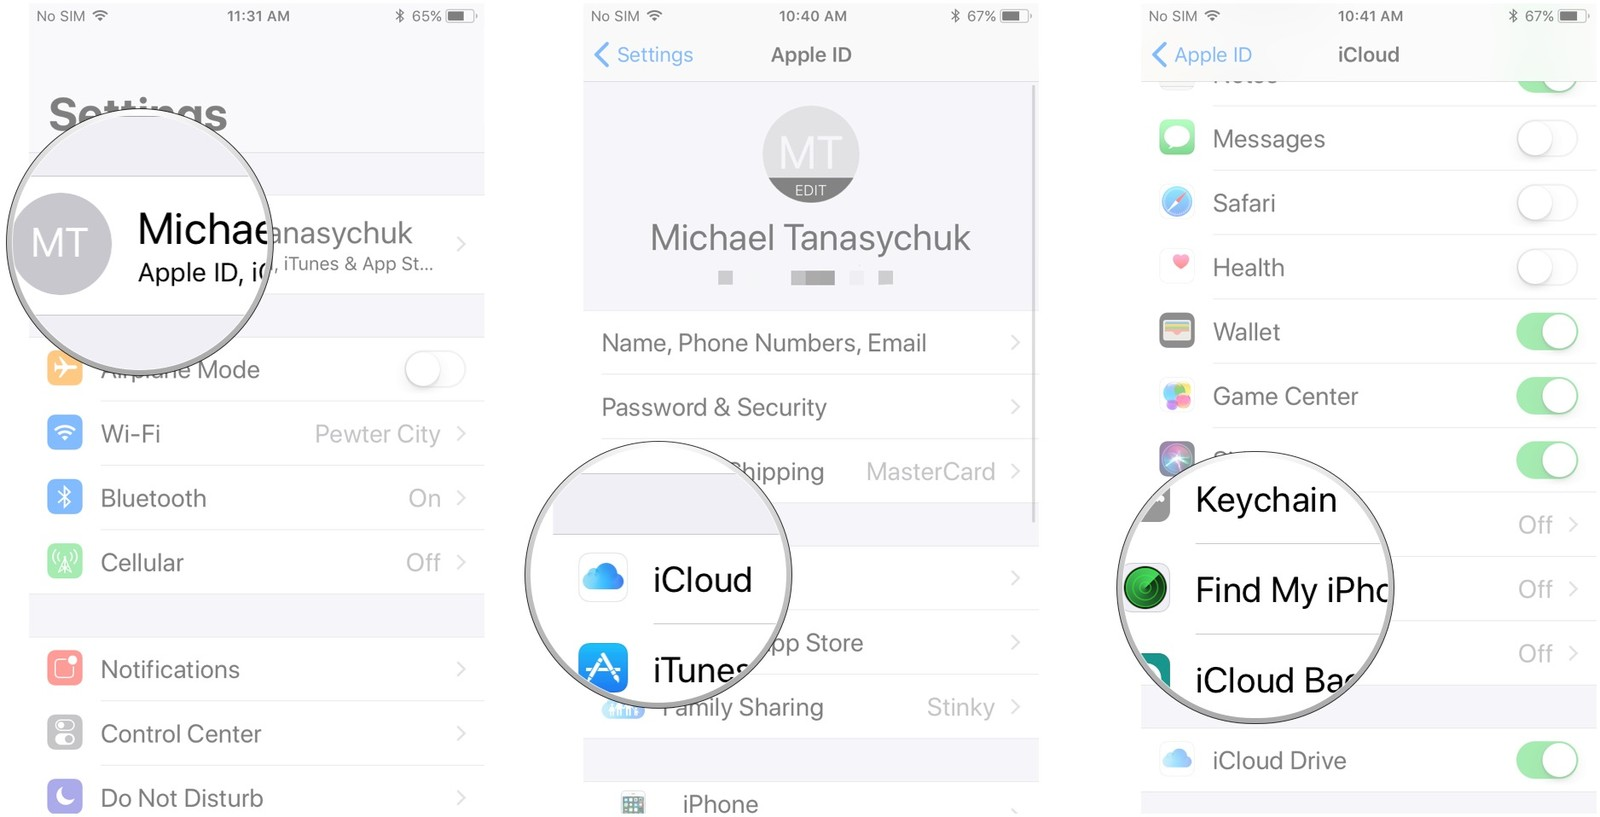 Strategy 2: Following iPhone without the application through iCloud